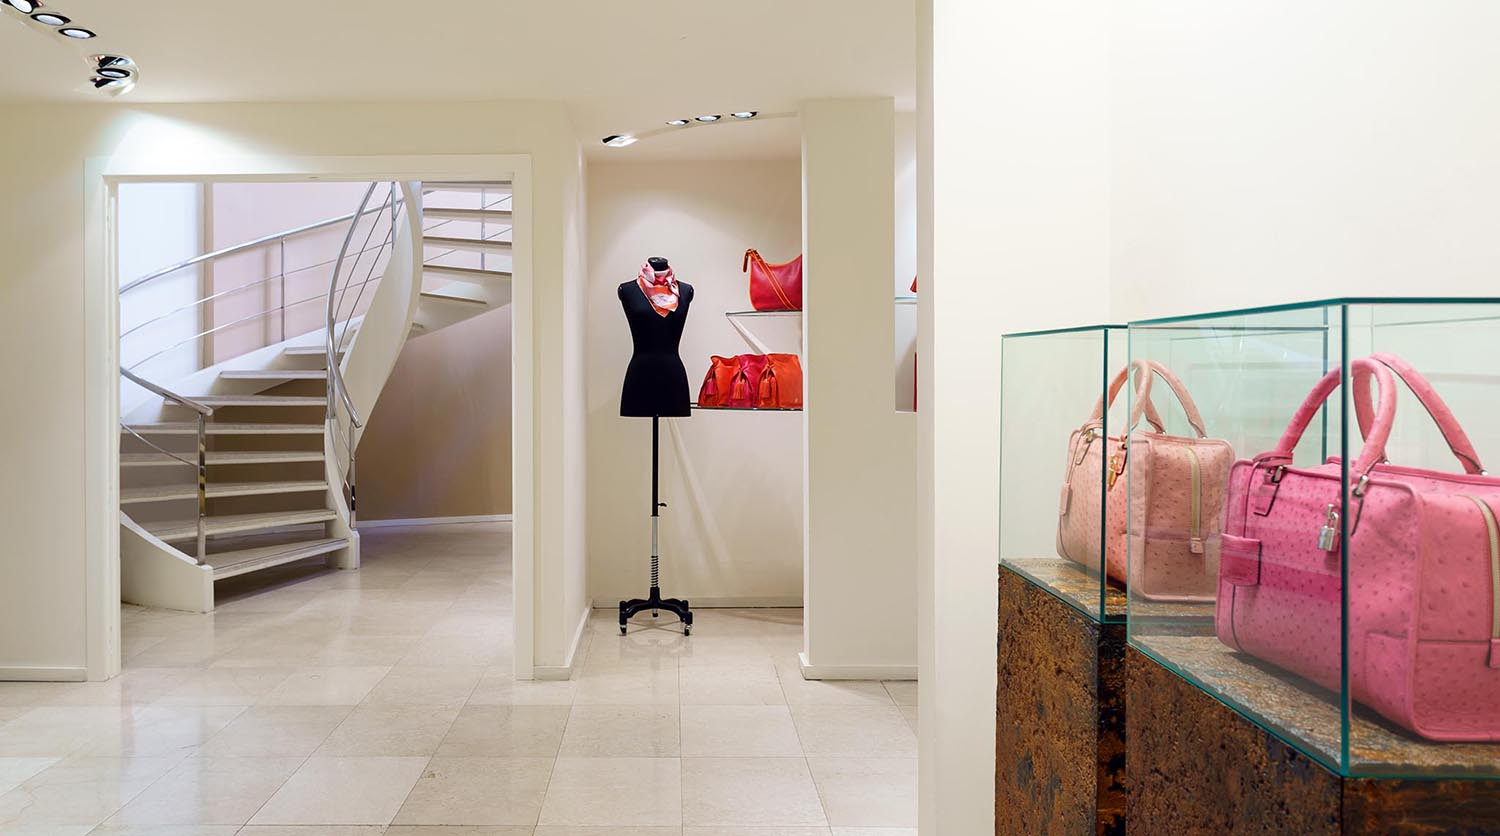 art-sanchez-architecture-interior-design-photography-video-mallorca-loewe-store-jaime-iii-6.jpg